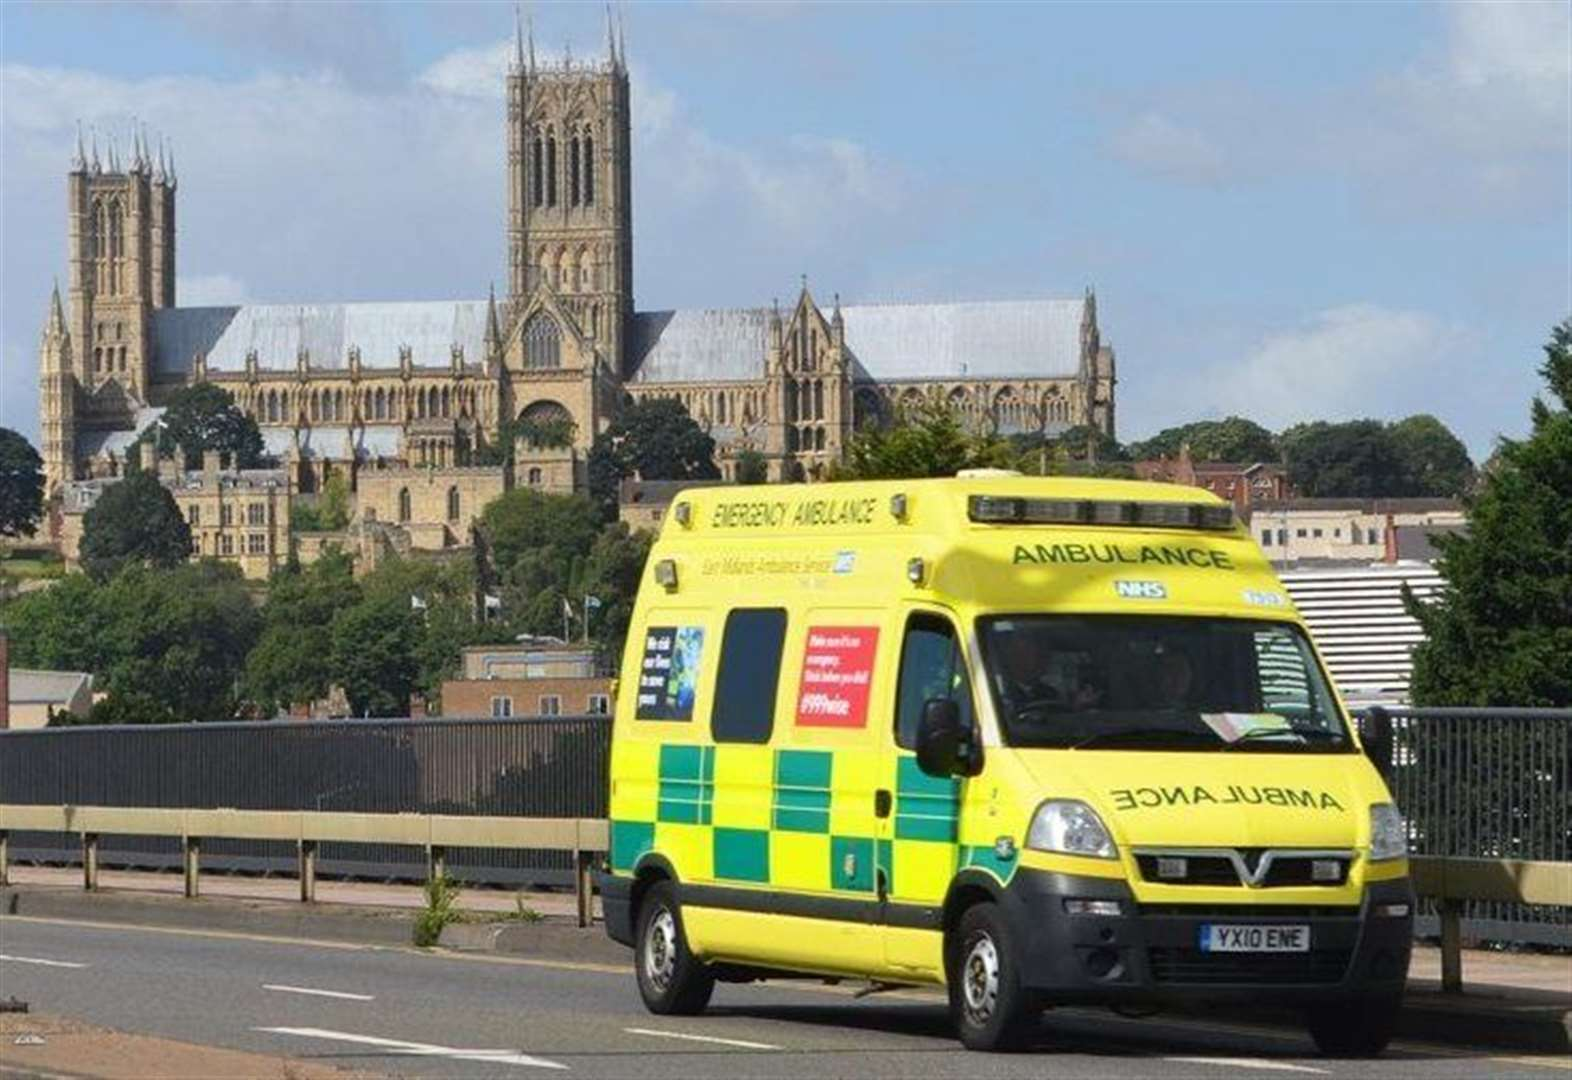 'Unprecedented demand' leads East Midlands Ambulance Service to spend £1m to retain private ambulance crews